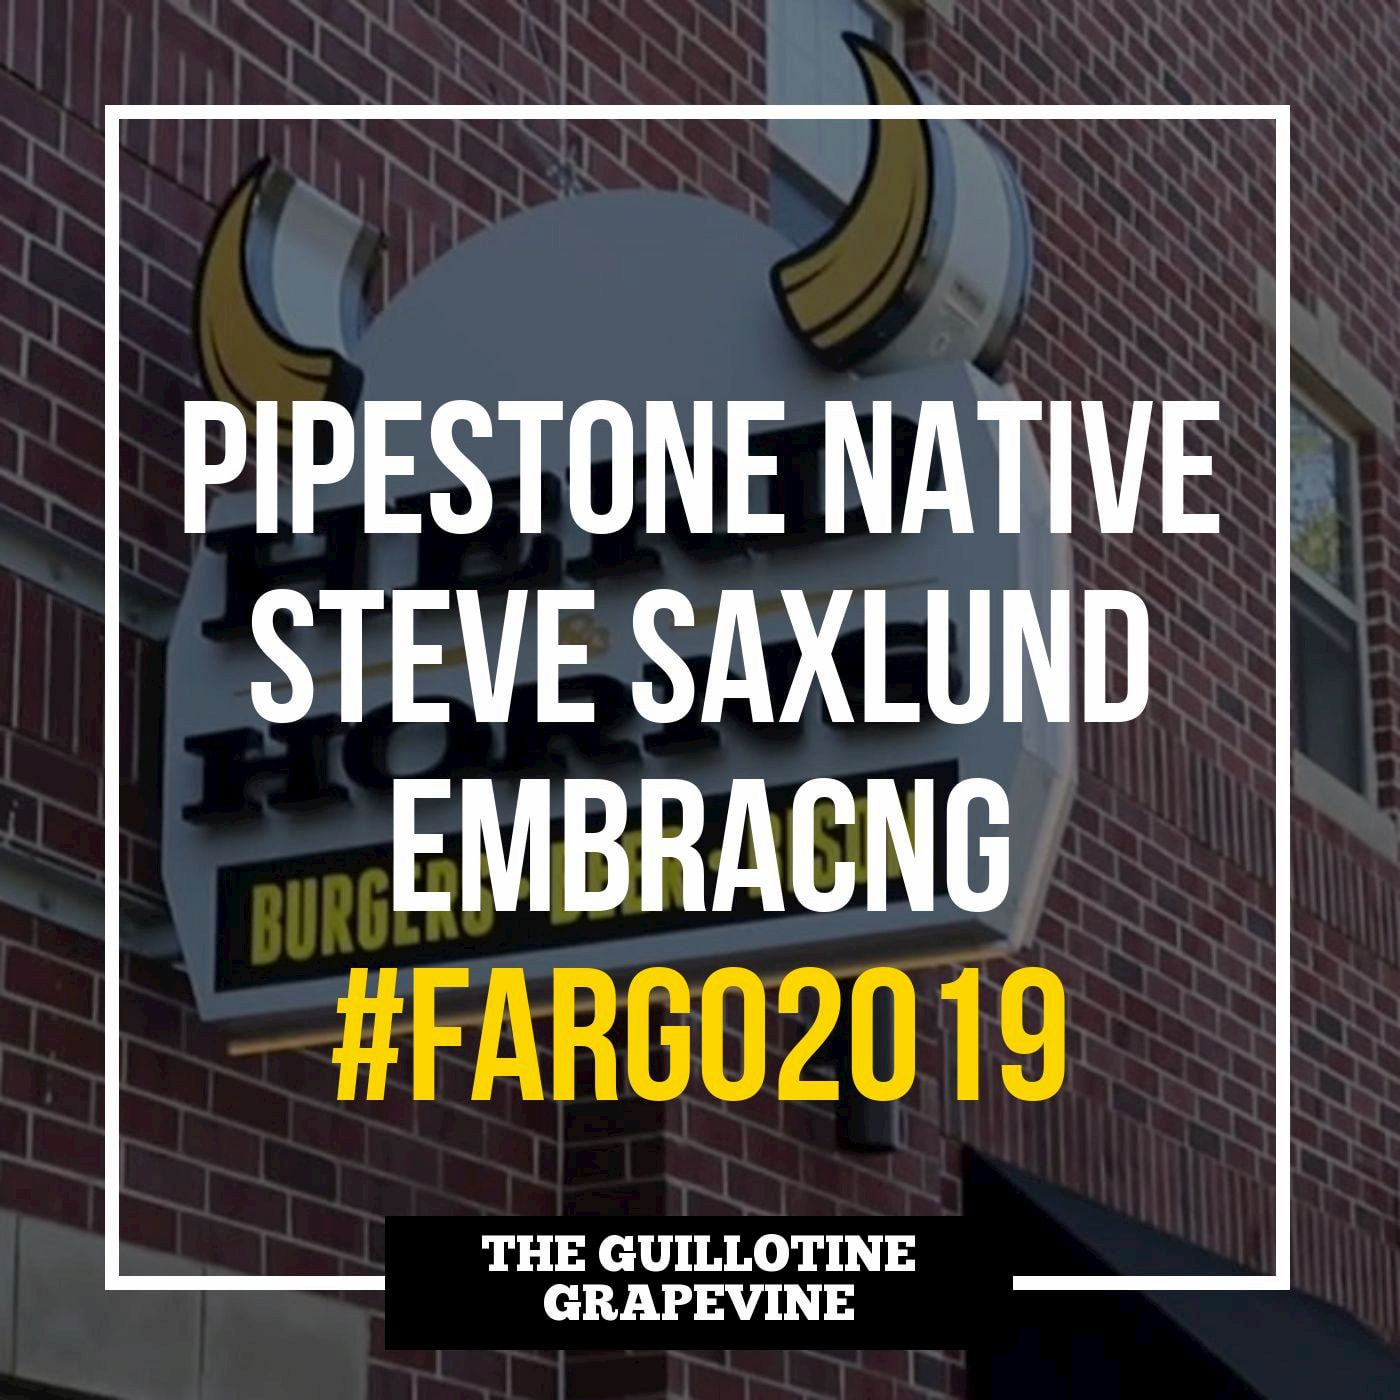 Business owner, three-time national champion Steve Saxlund prepares for another year in Fargo - GG58